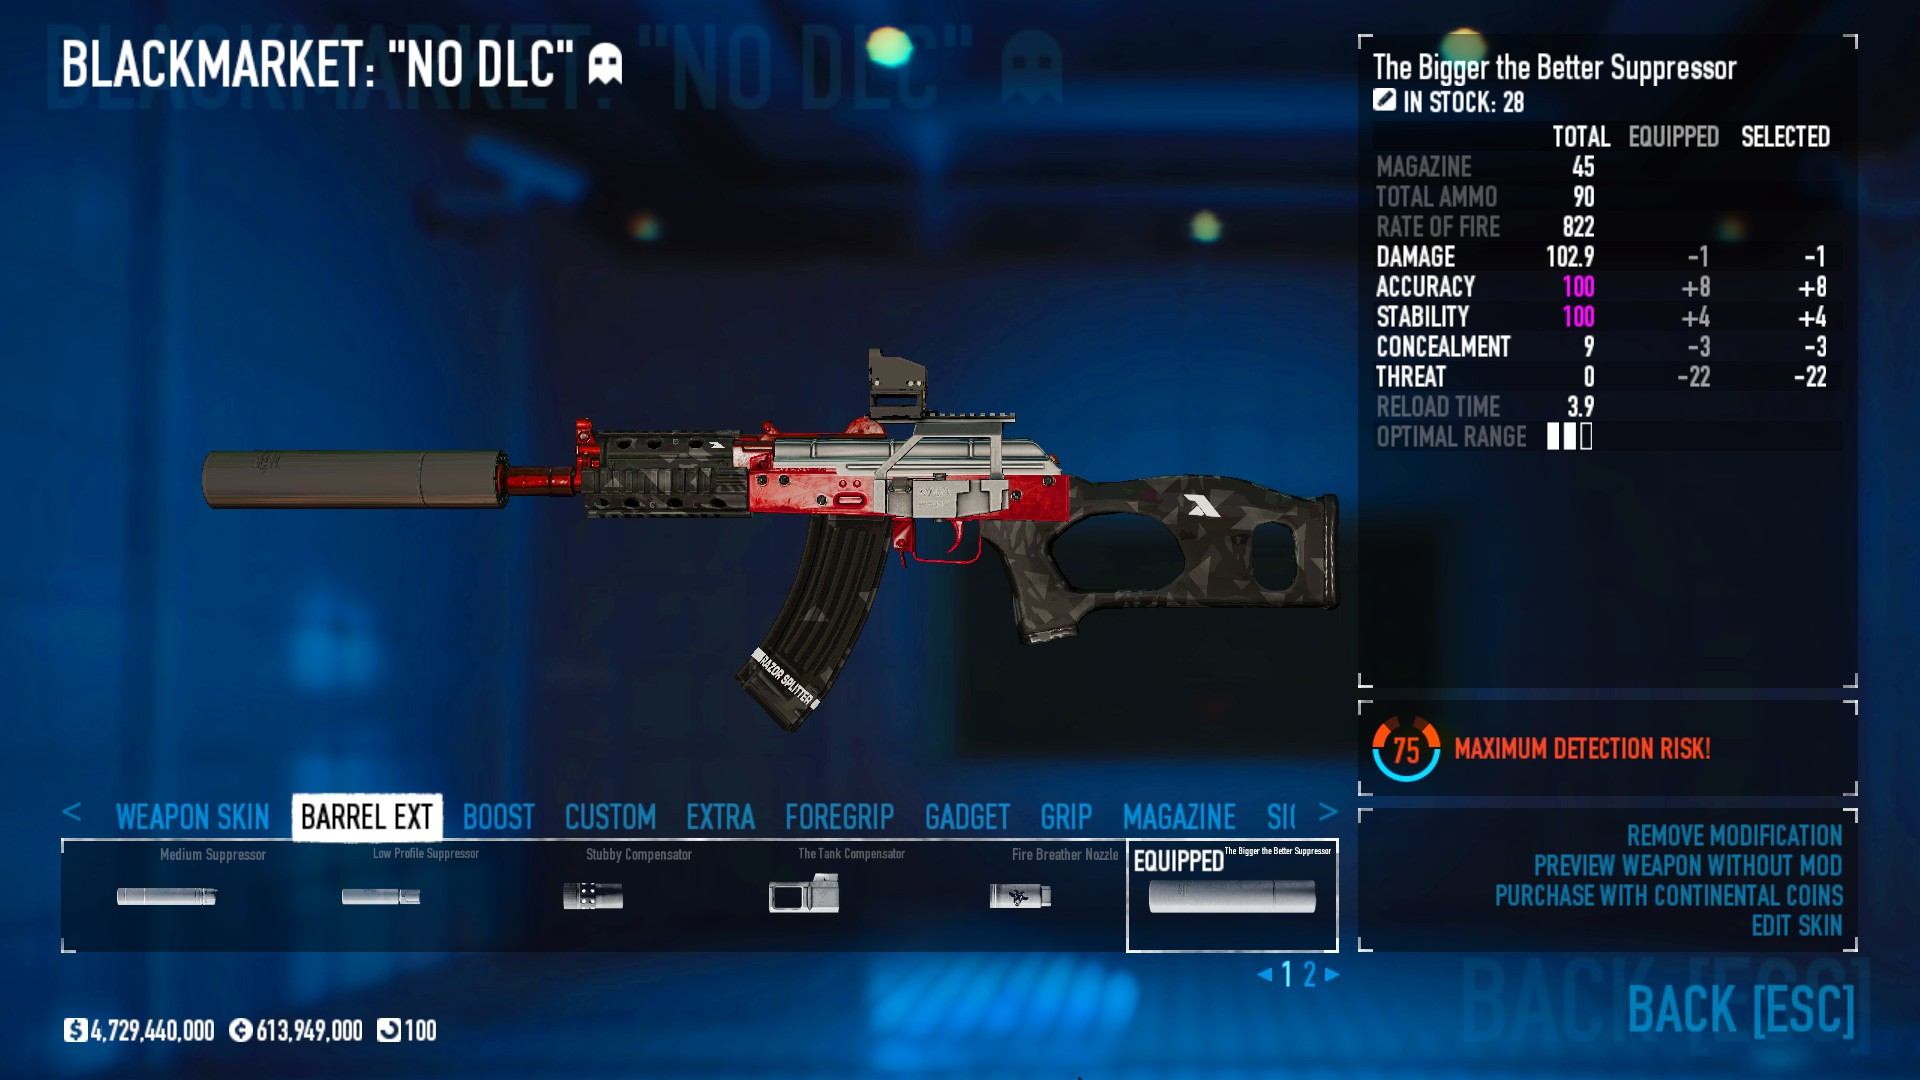 PAYDAY 2 - DSOD No DLC Build + Weapons Attachments & Class - Inventory and Weapons - 1BADD4E